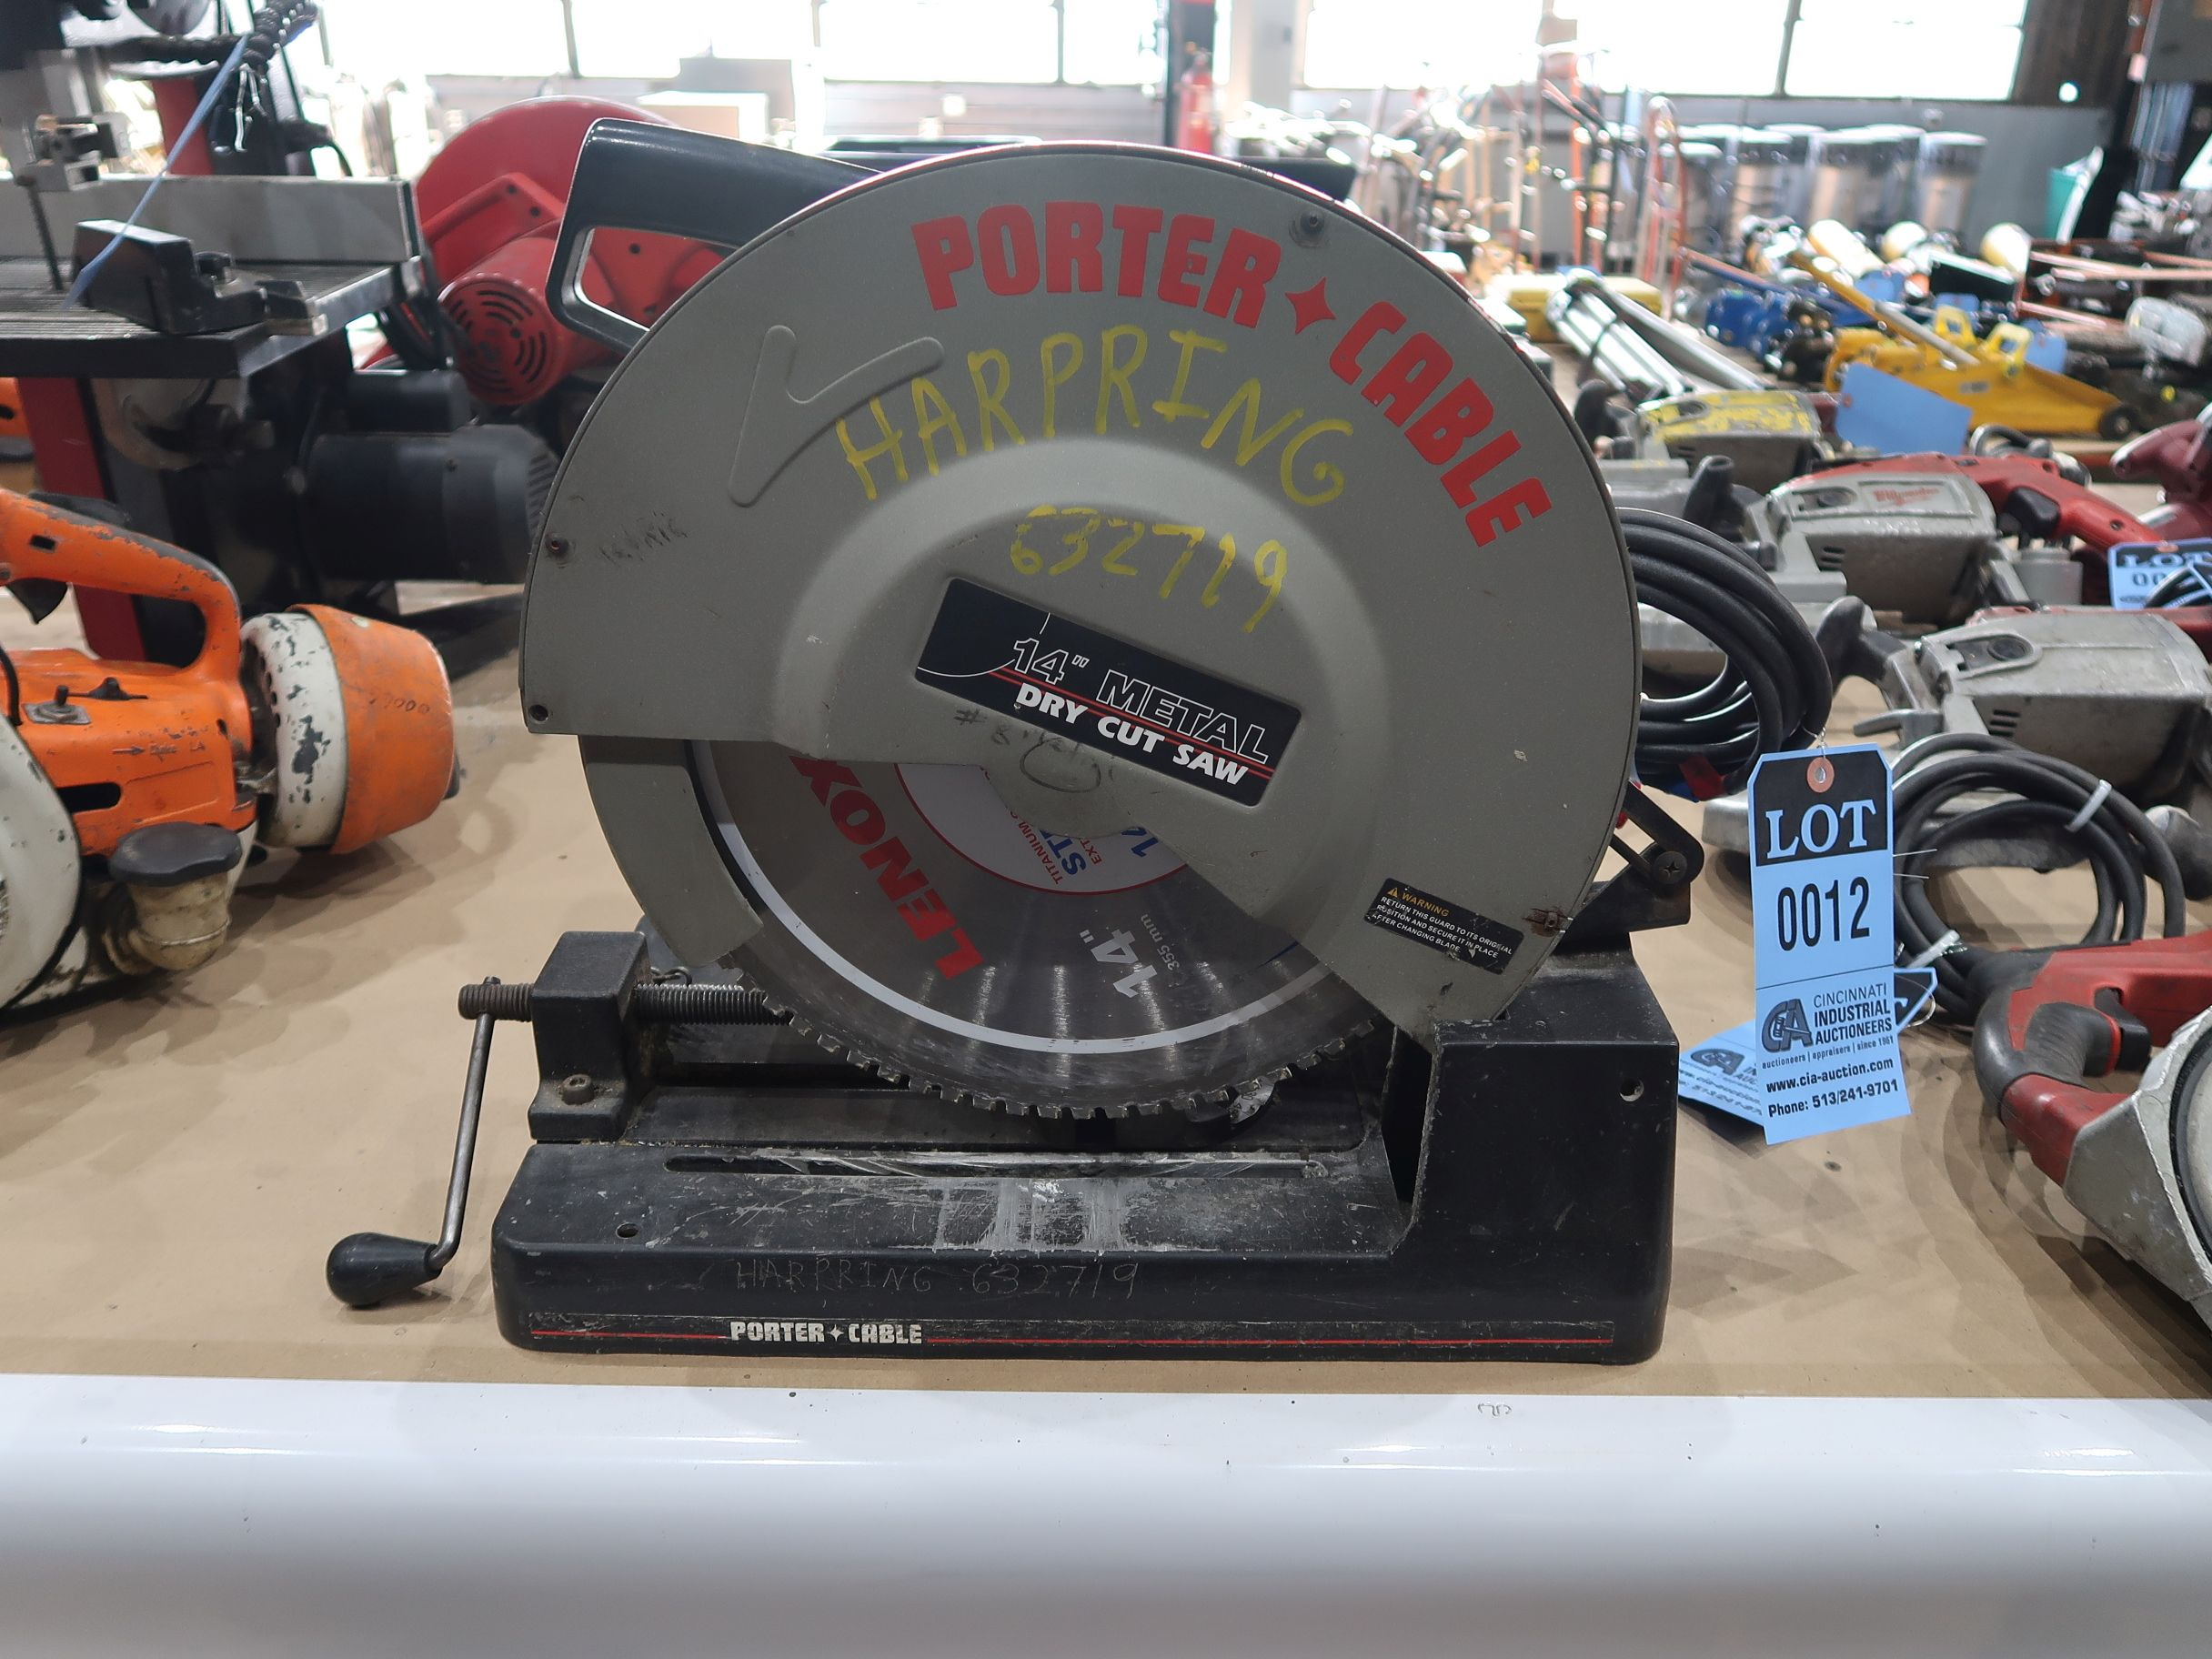 14 porter cable cut off saw lot 12 14 porter cable cut off saw greentooth Images